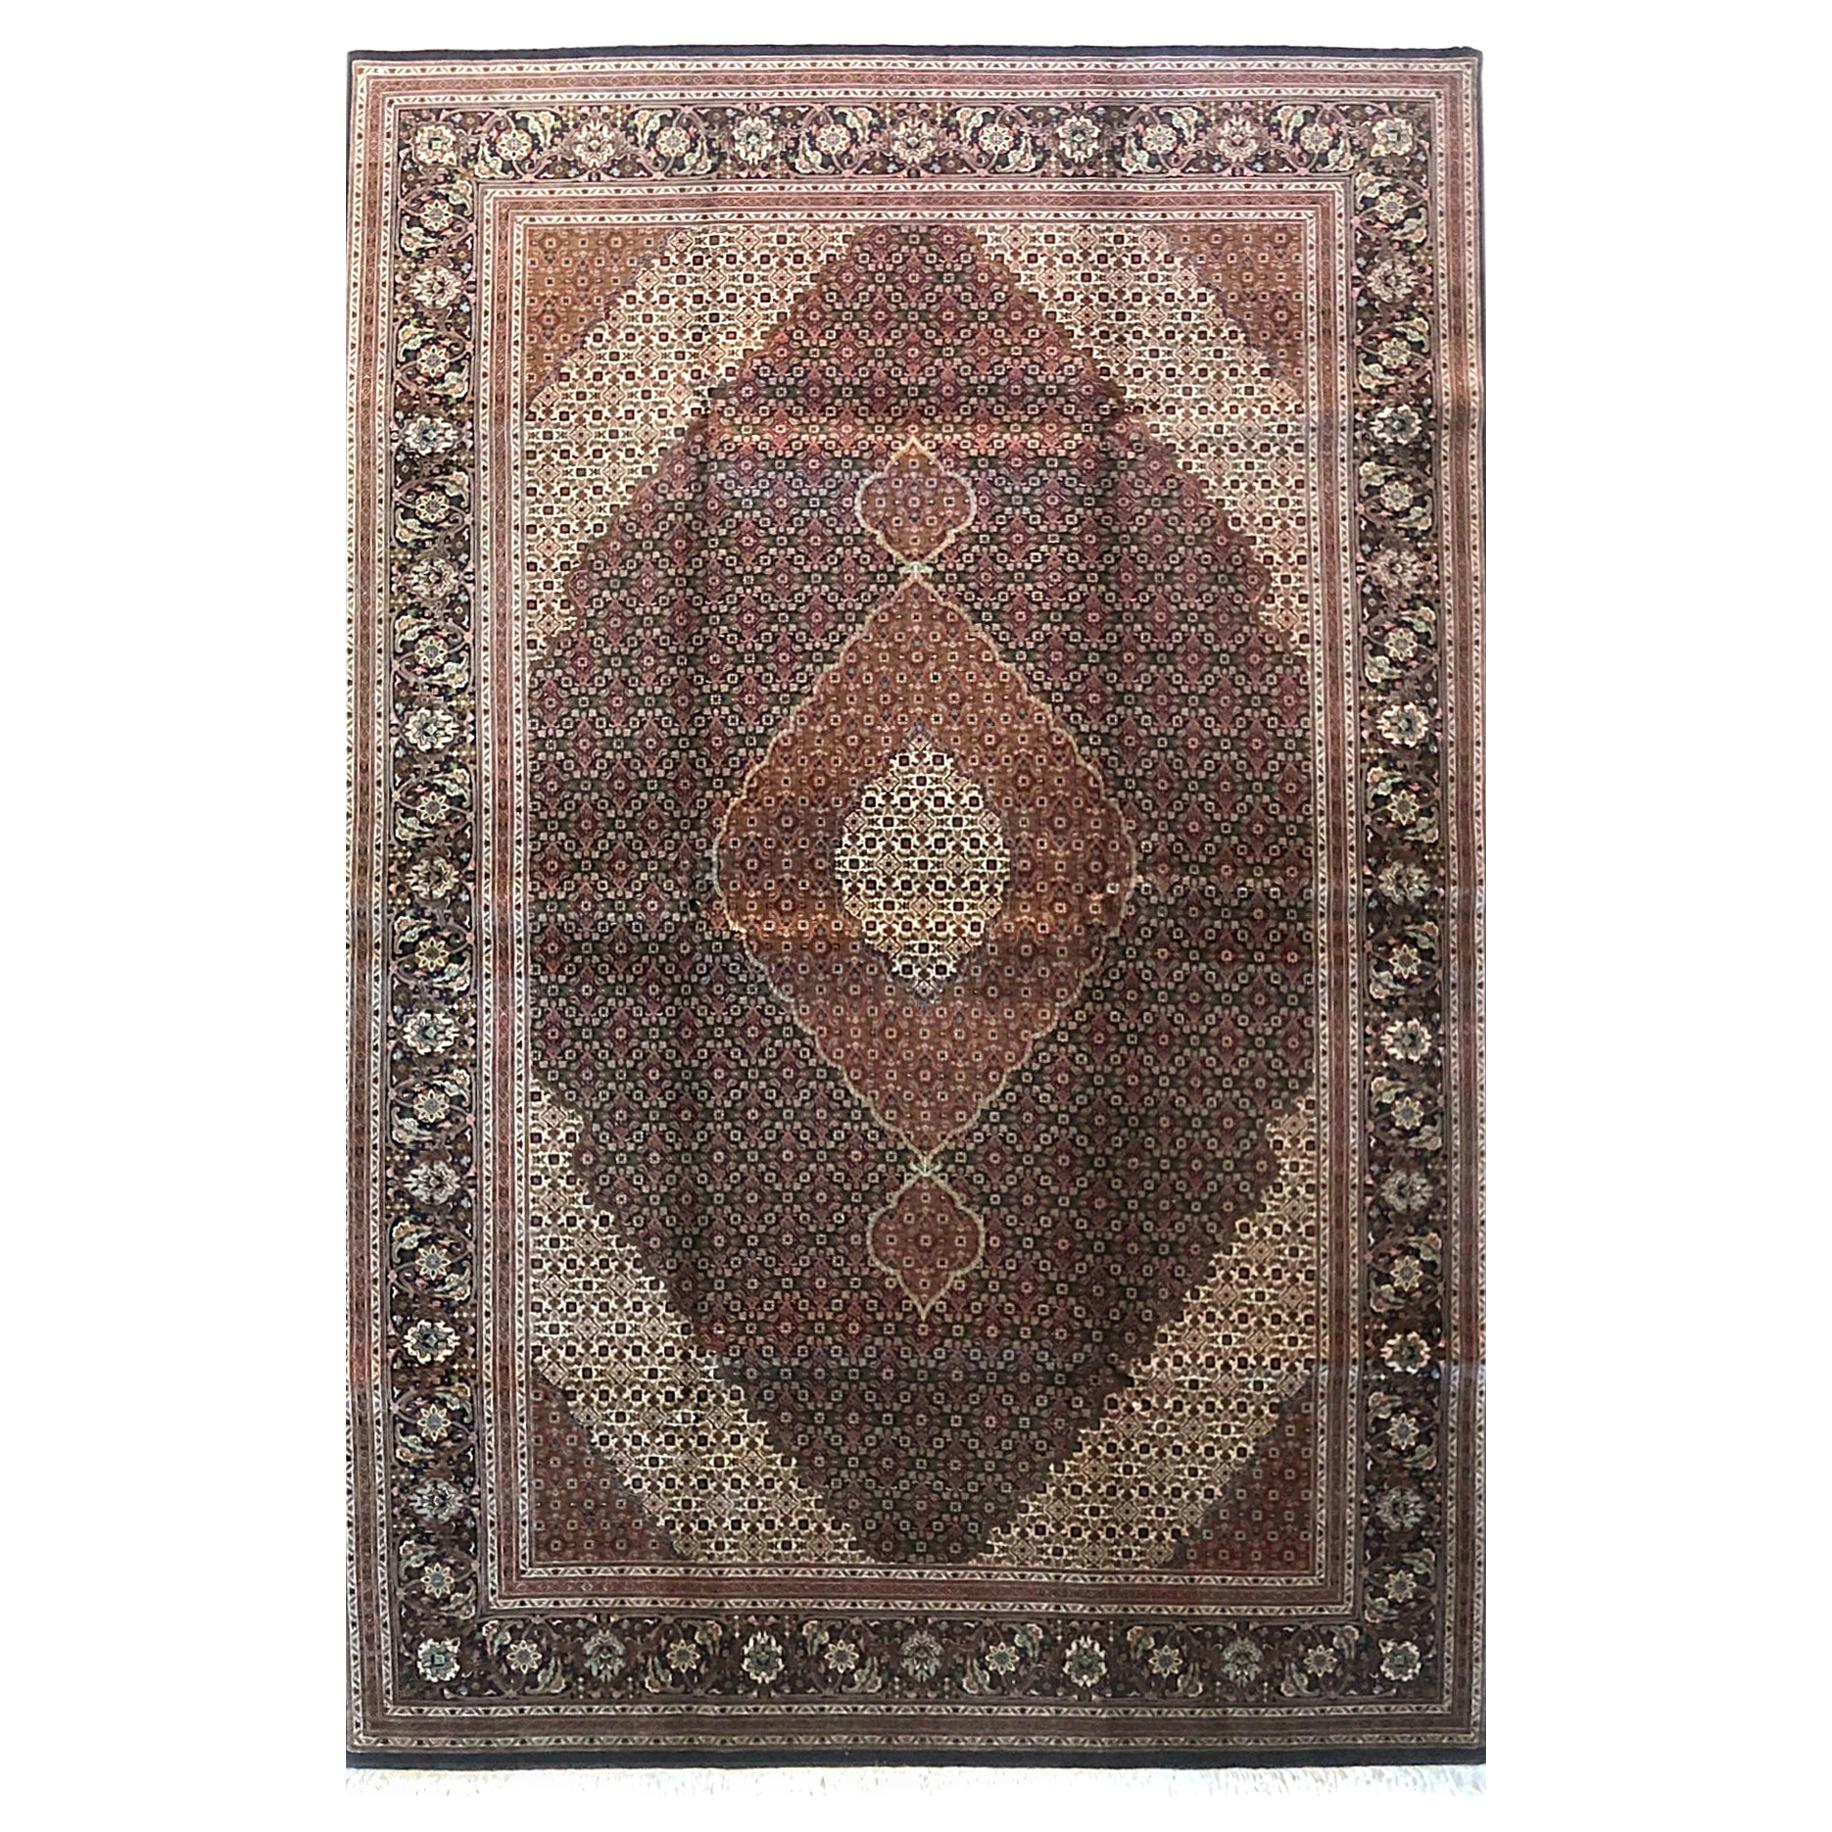 Authentic Persian Hand Knotted Medallion Fish Design 'Mahi' Tabriz Rug